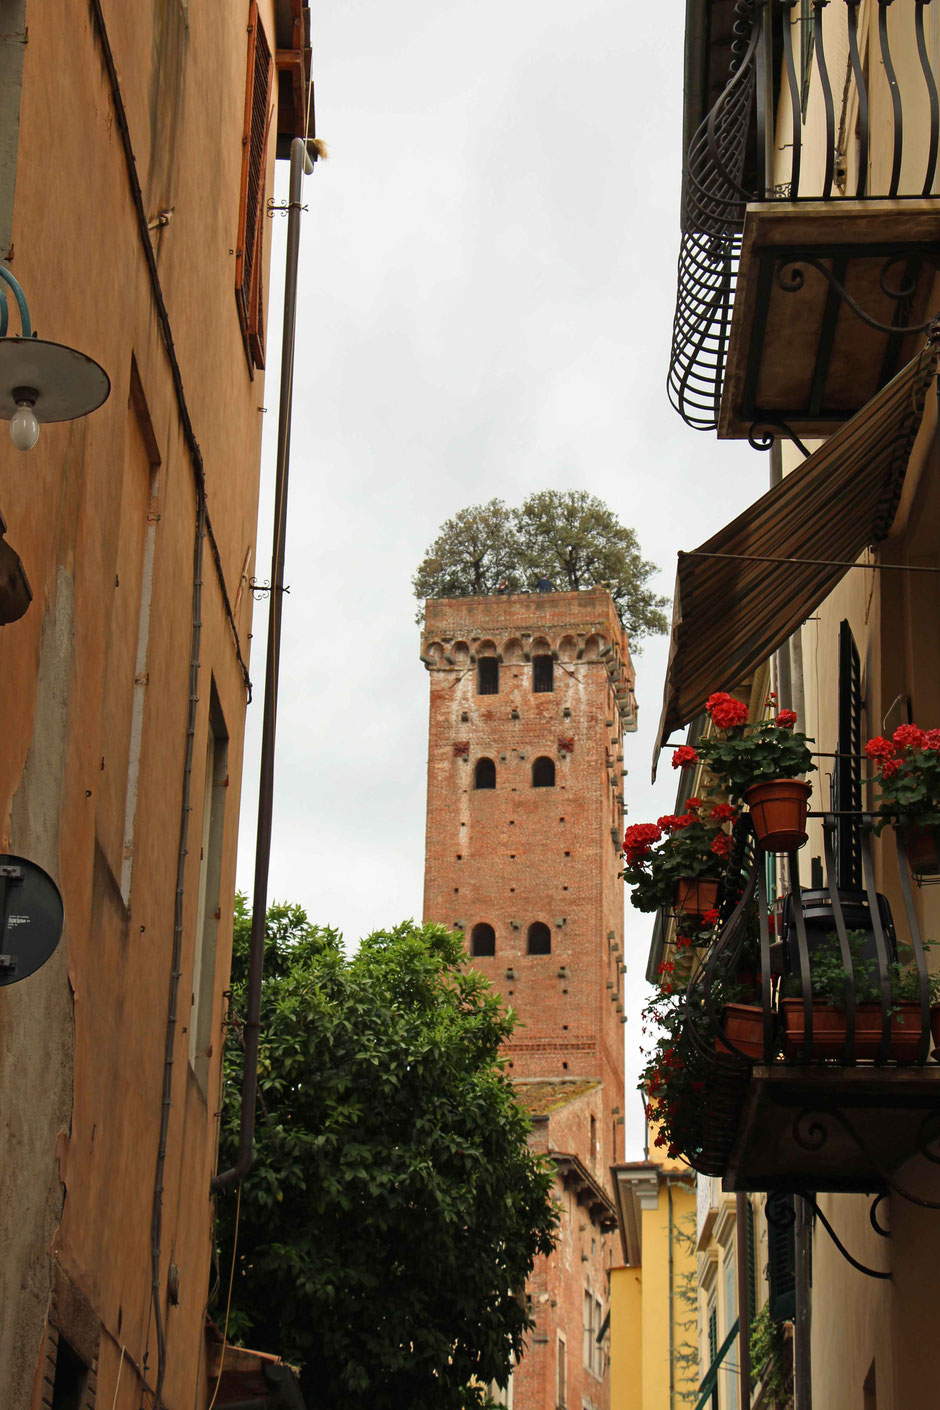 View of Guinigi Tower in Lucca Italy